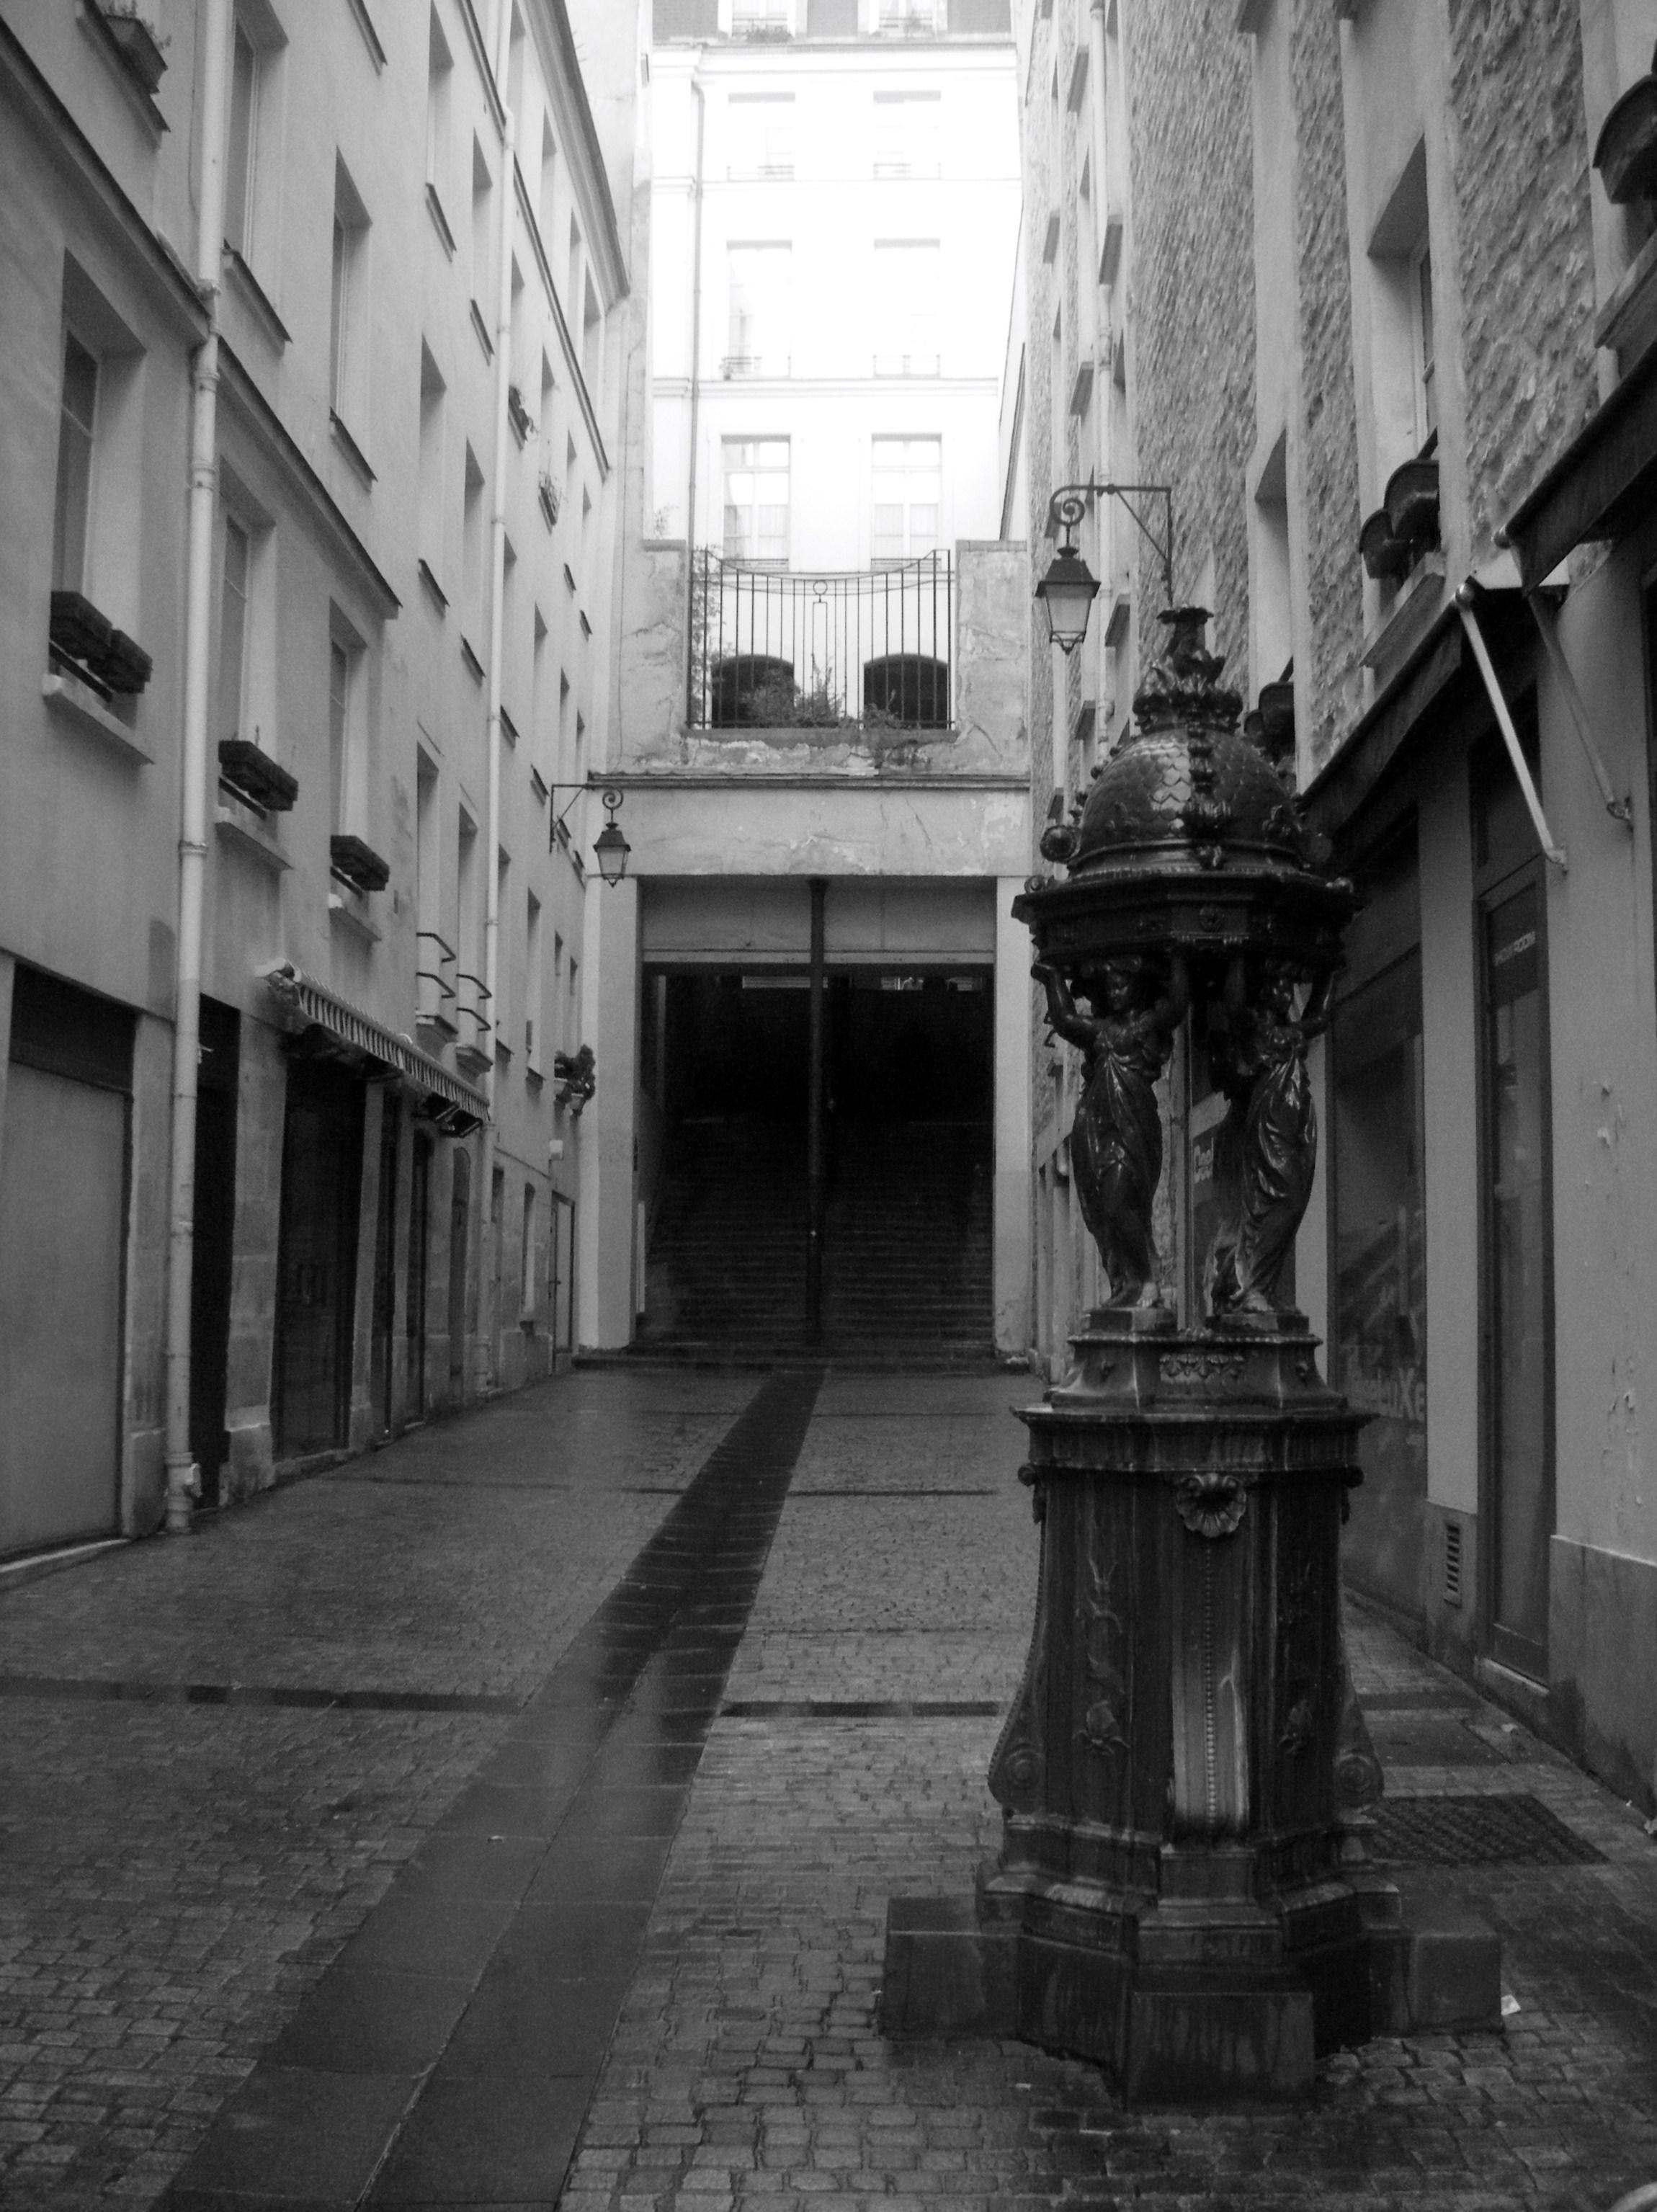 escaliers des rues de paris passage du pont aux biches paperblog. Black Bedroom Furniture Sets. Home Design Ideas